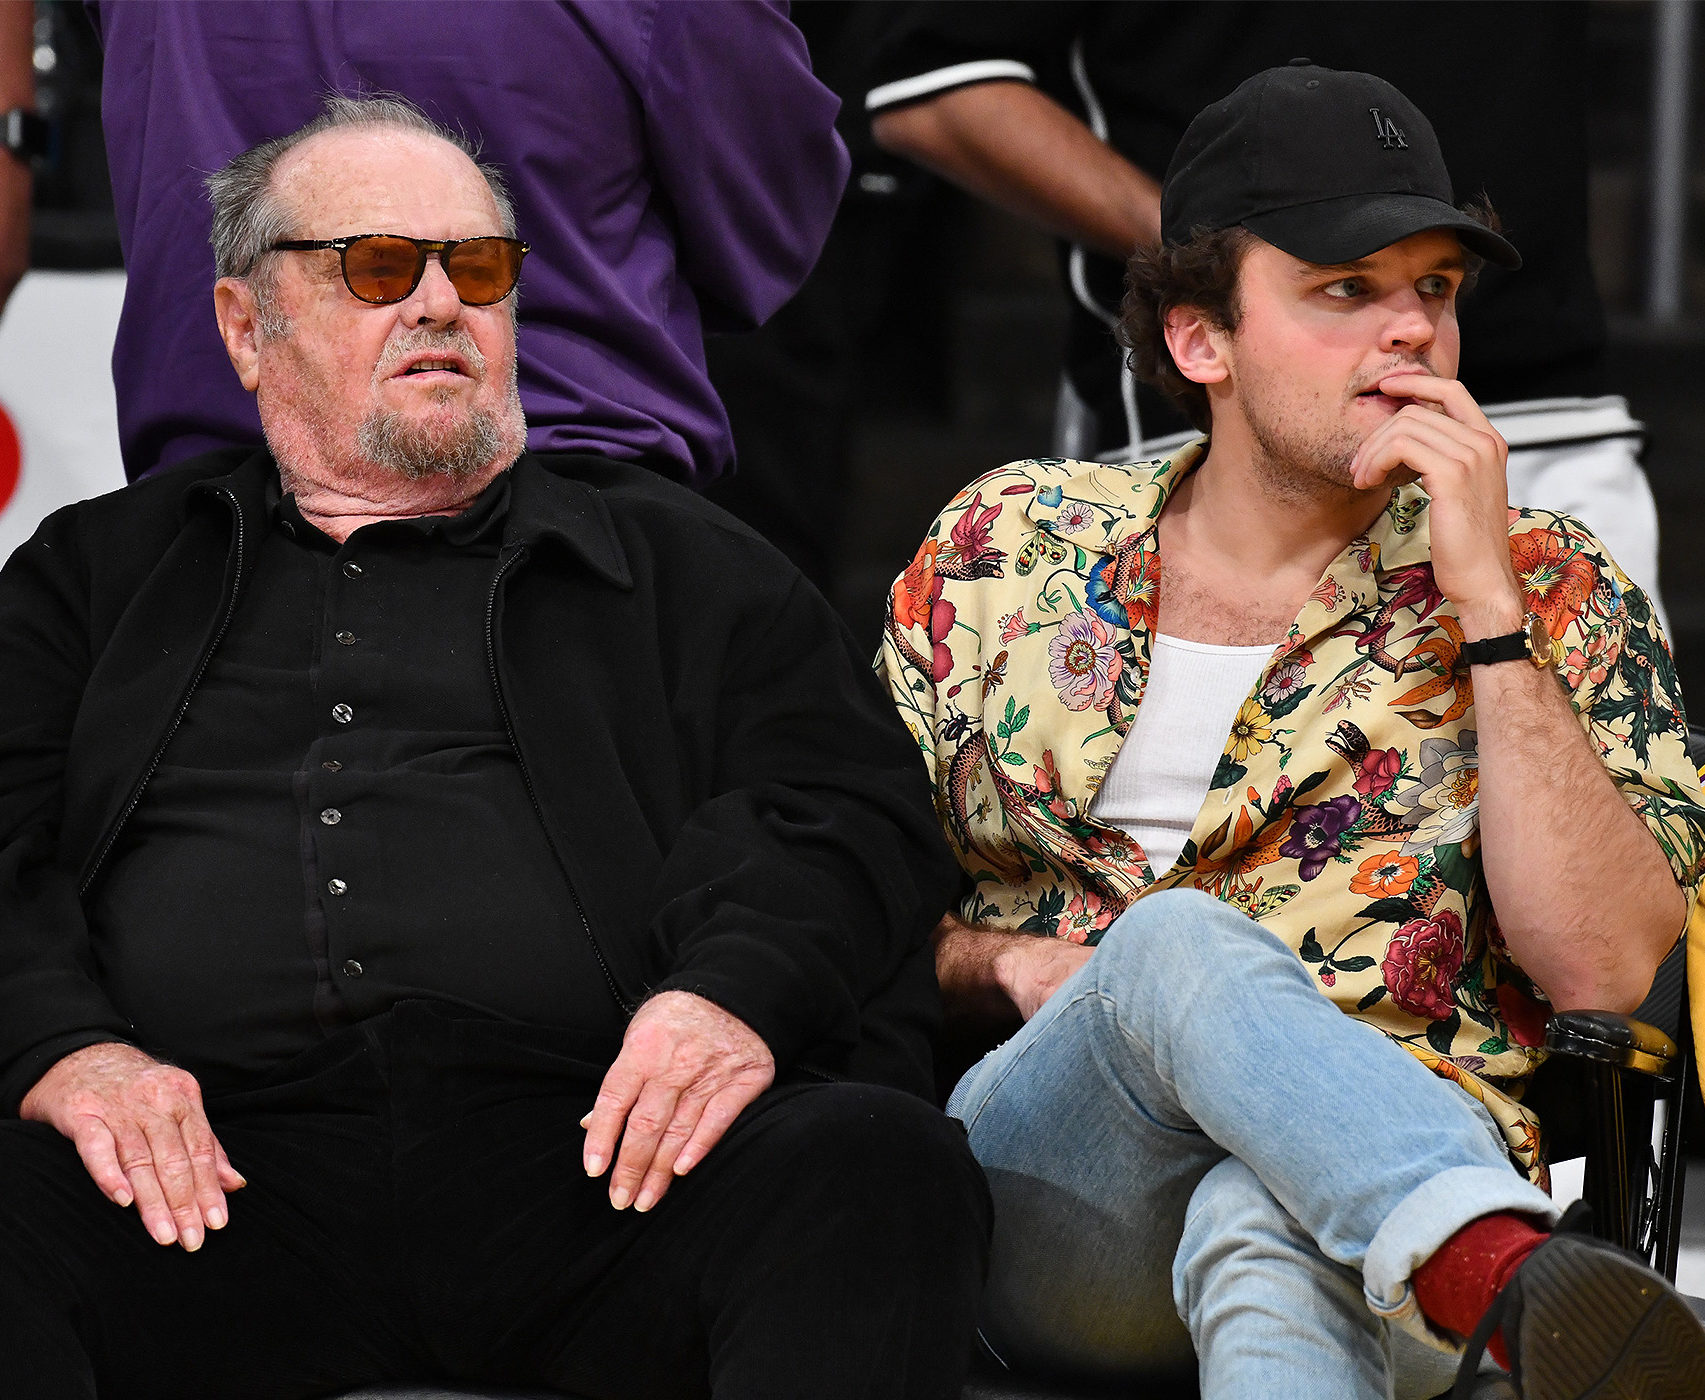 1 23 e1611068650596 How Jack Nicholson Went From Class Clown To Bad Boy of Mulholland Drive